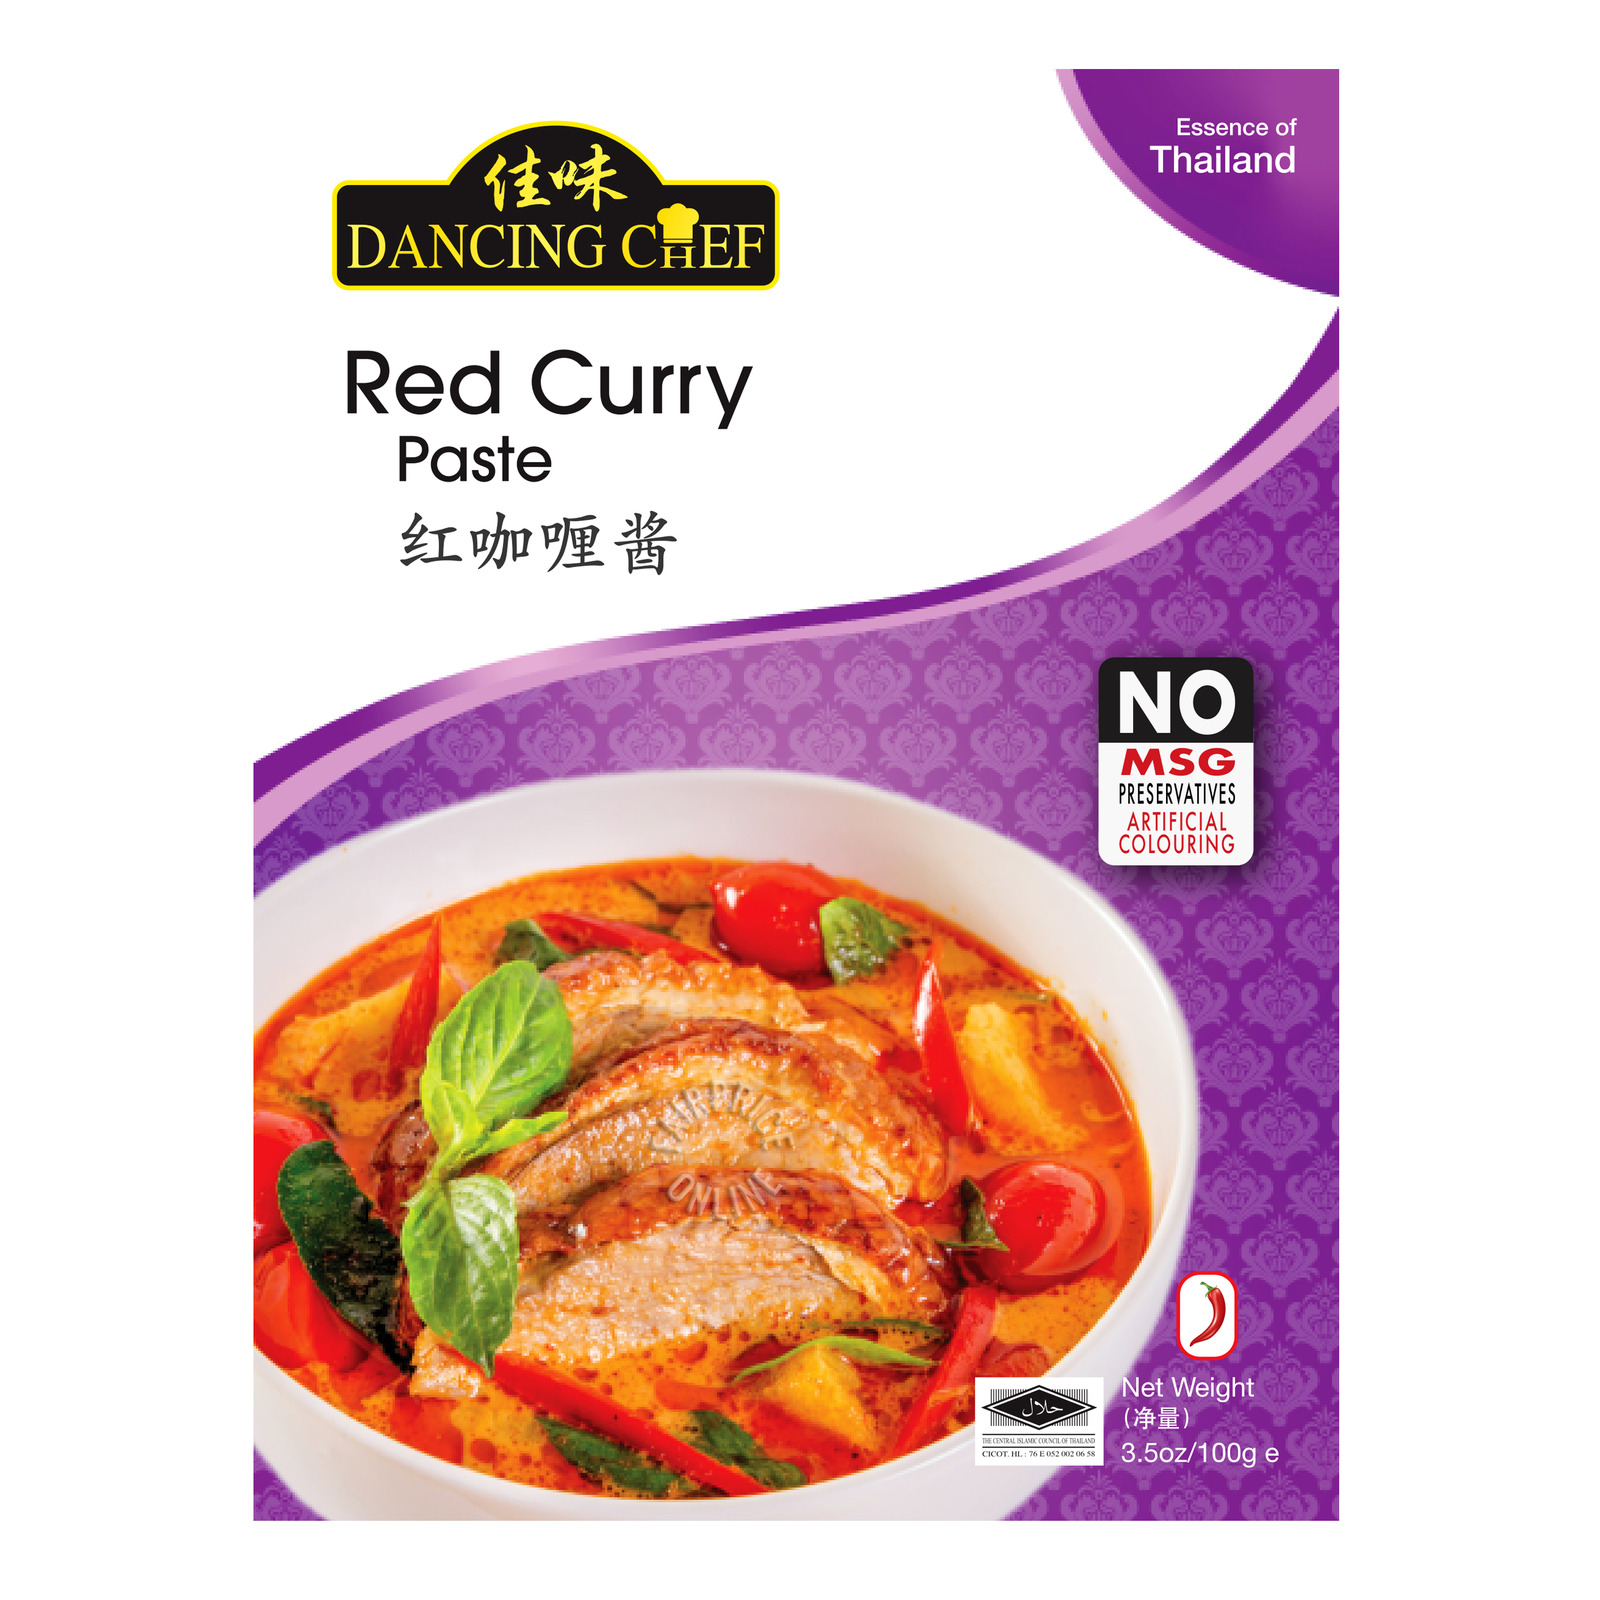 Thailand Dancing Chef Red Curry Paste 100g No MSG